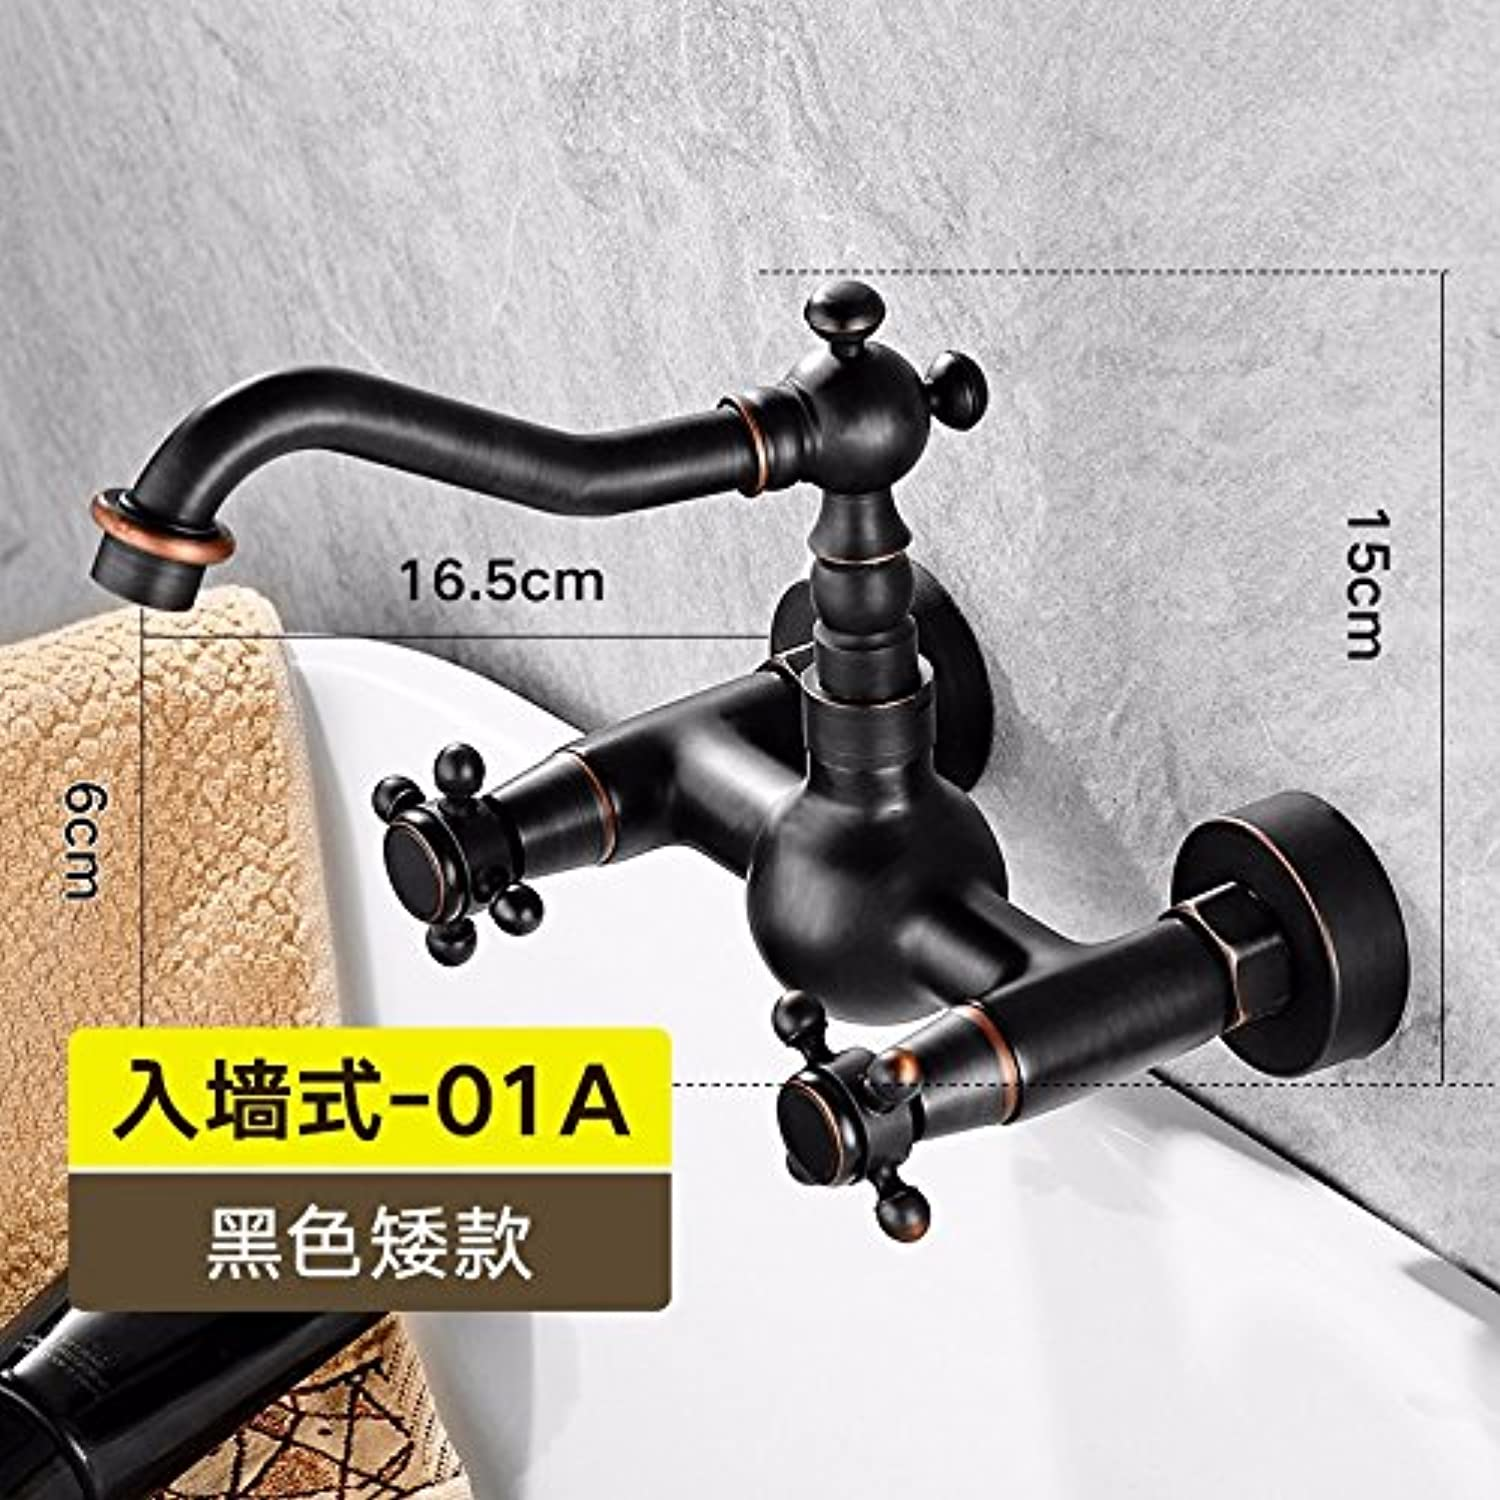 LighSCH Antique Sink Mixer Tap Bathroom Wall-Mounted Hot and Cold Double-Hole Lowa